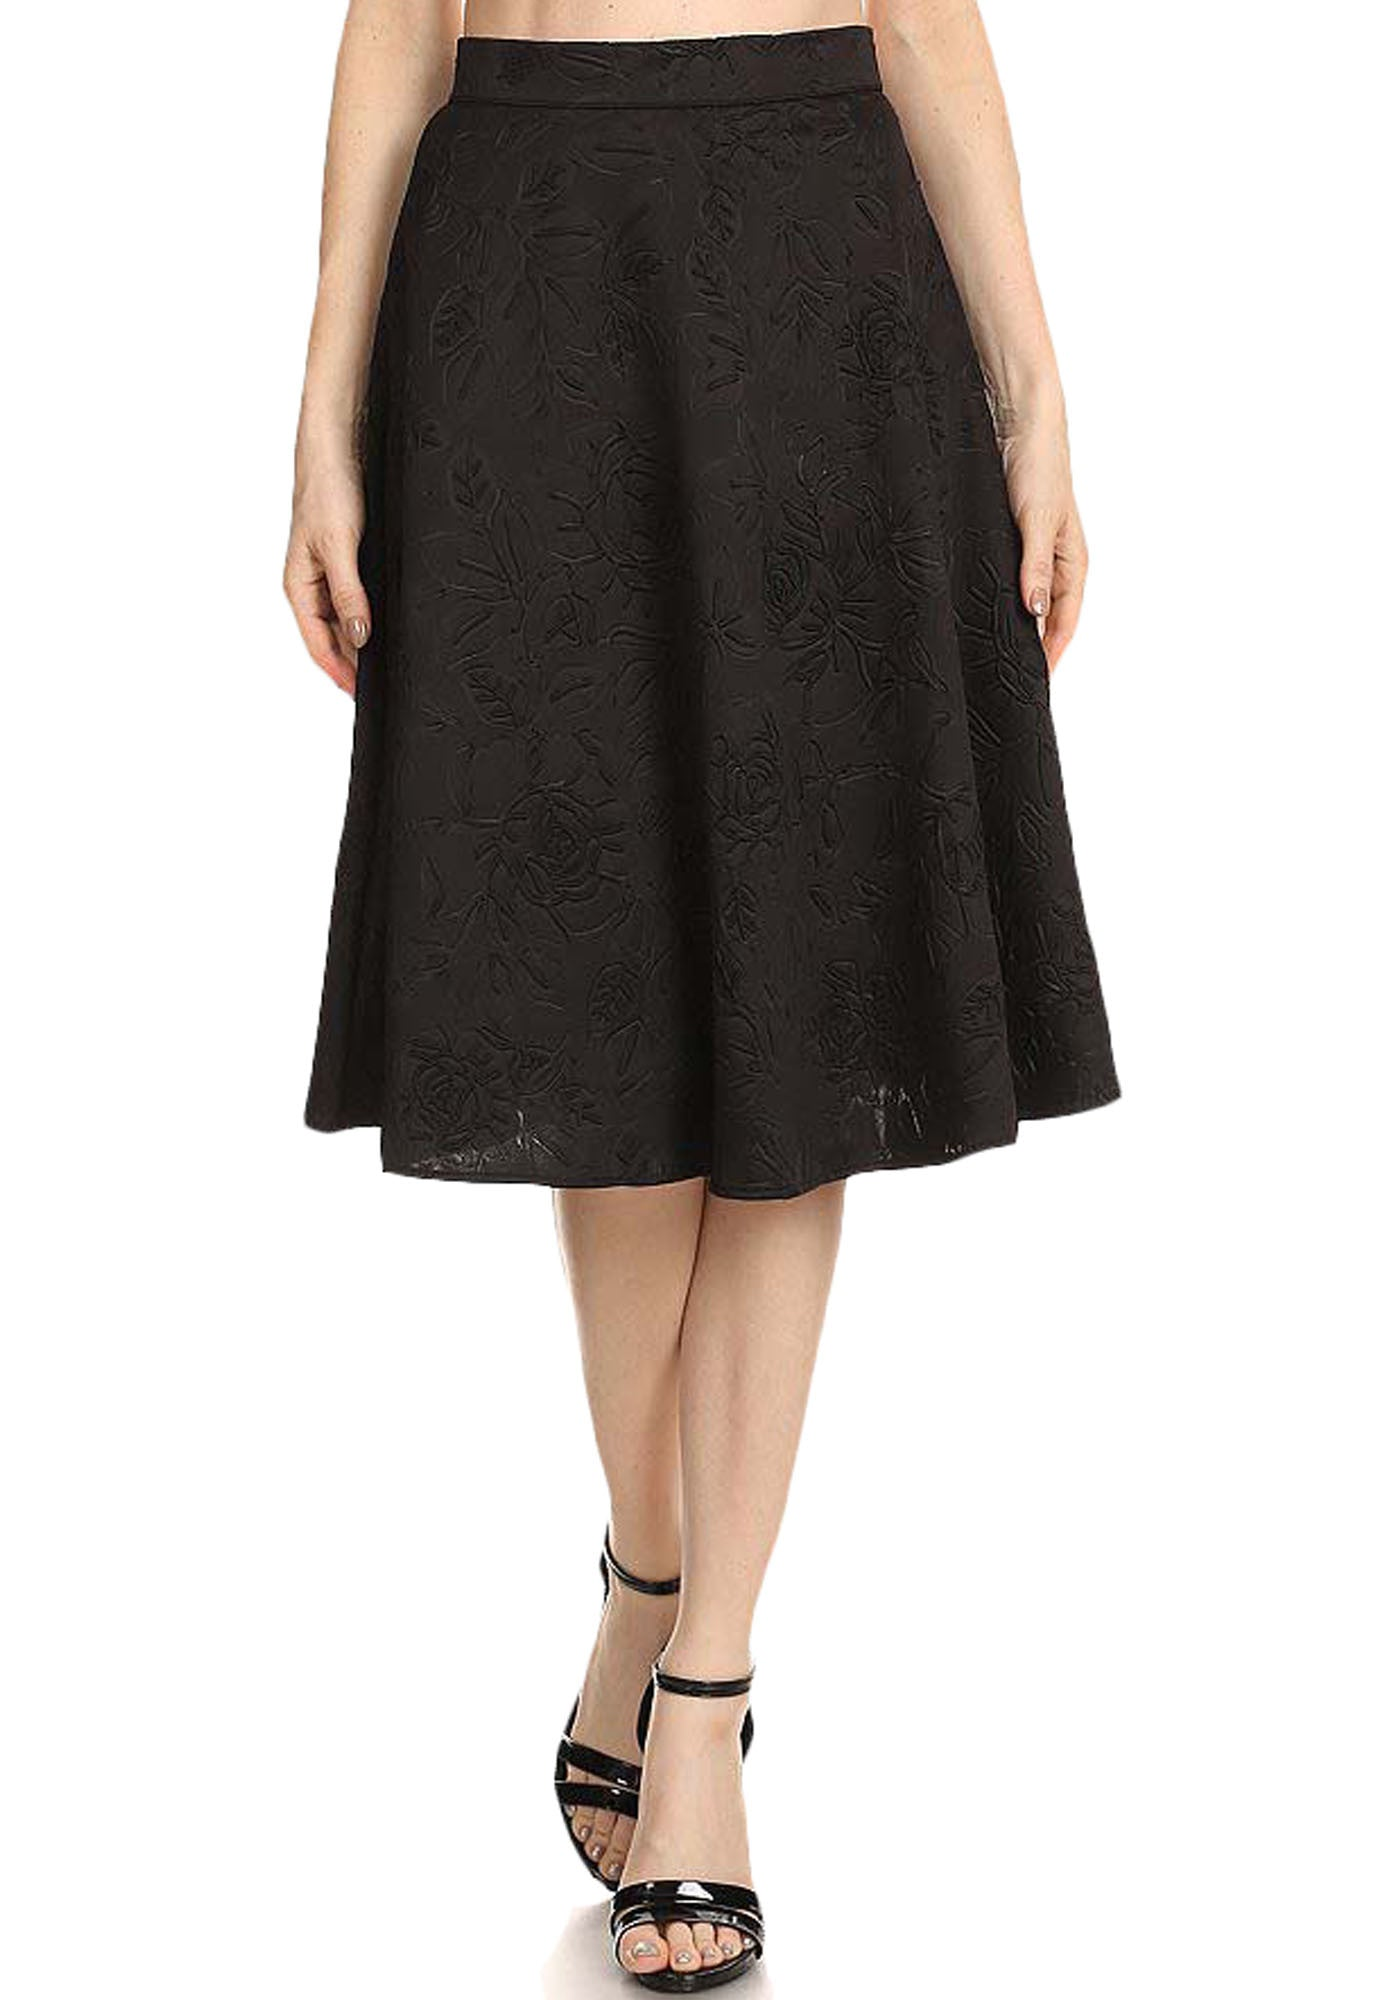 Avital Womens Damask Textured A-Line High Waisted Midi Skirt | Black,Skirts,Avital - Discount Divas